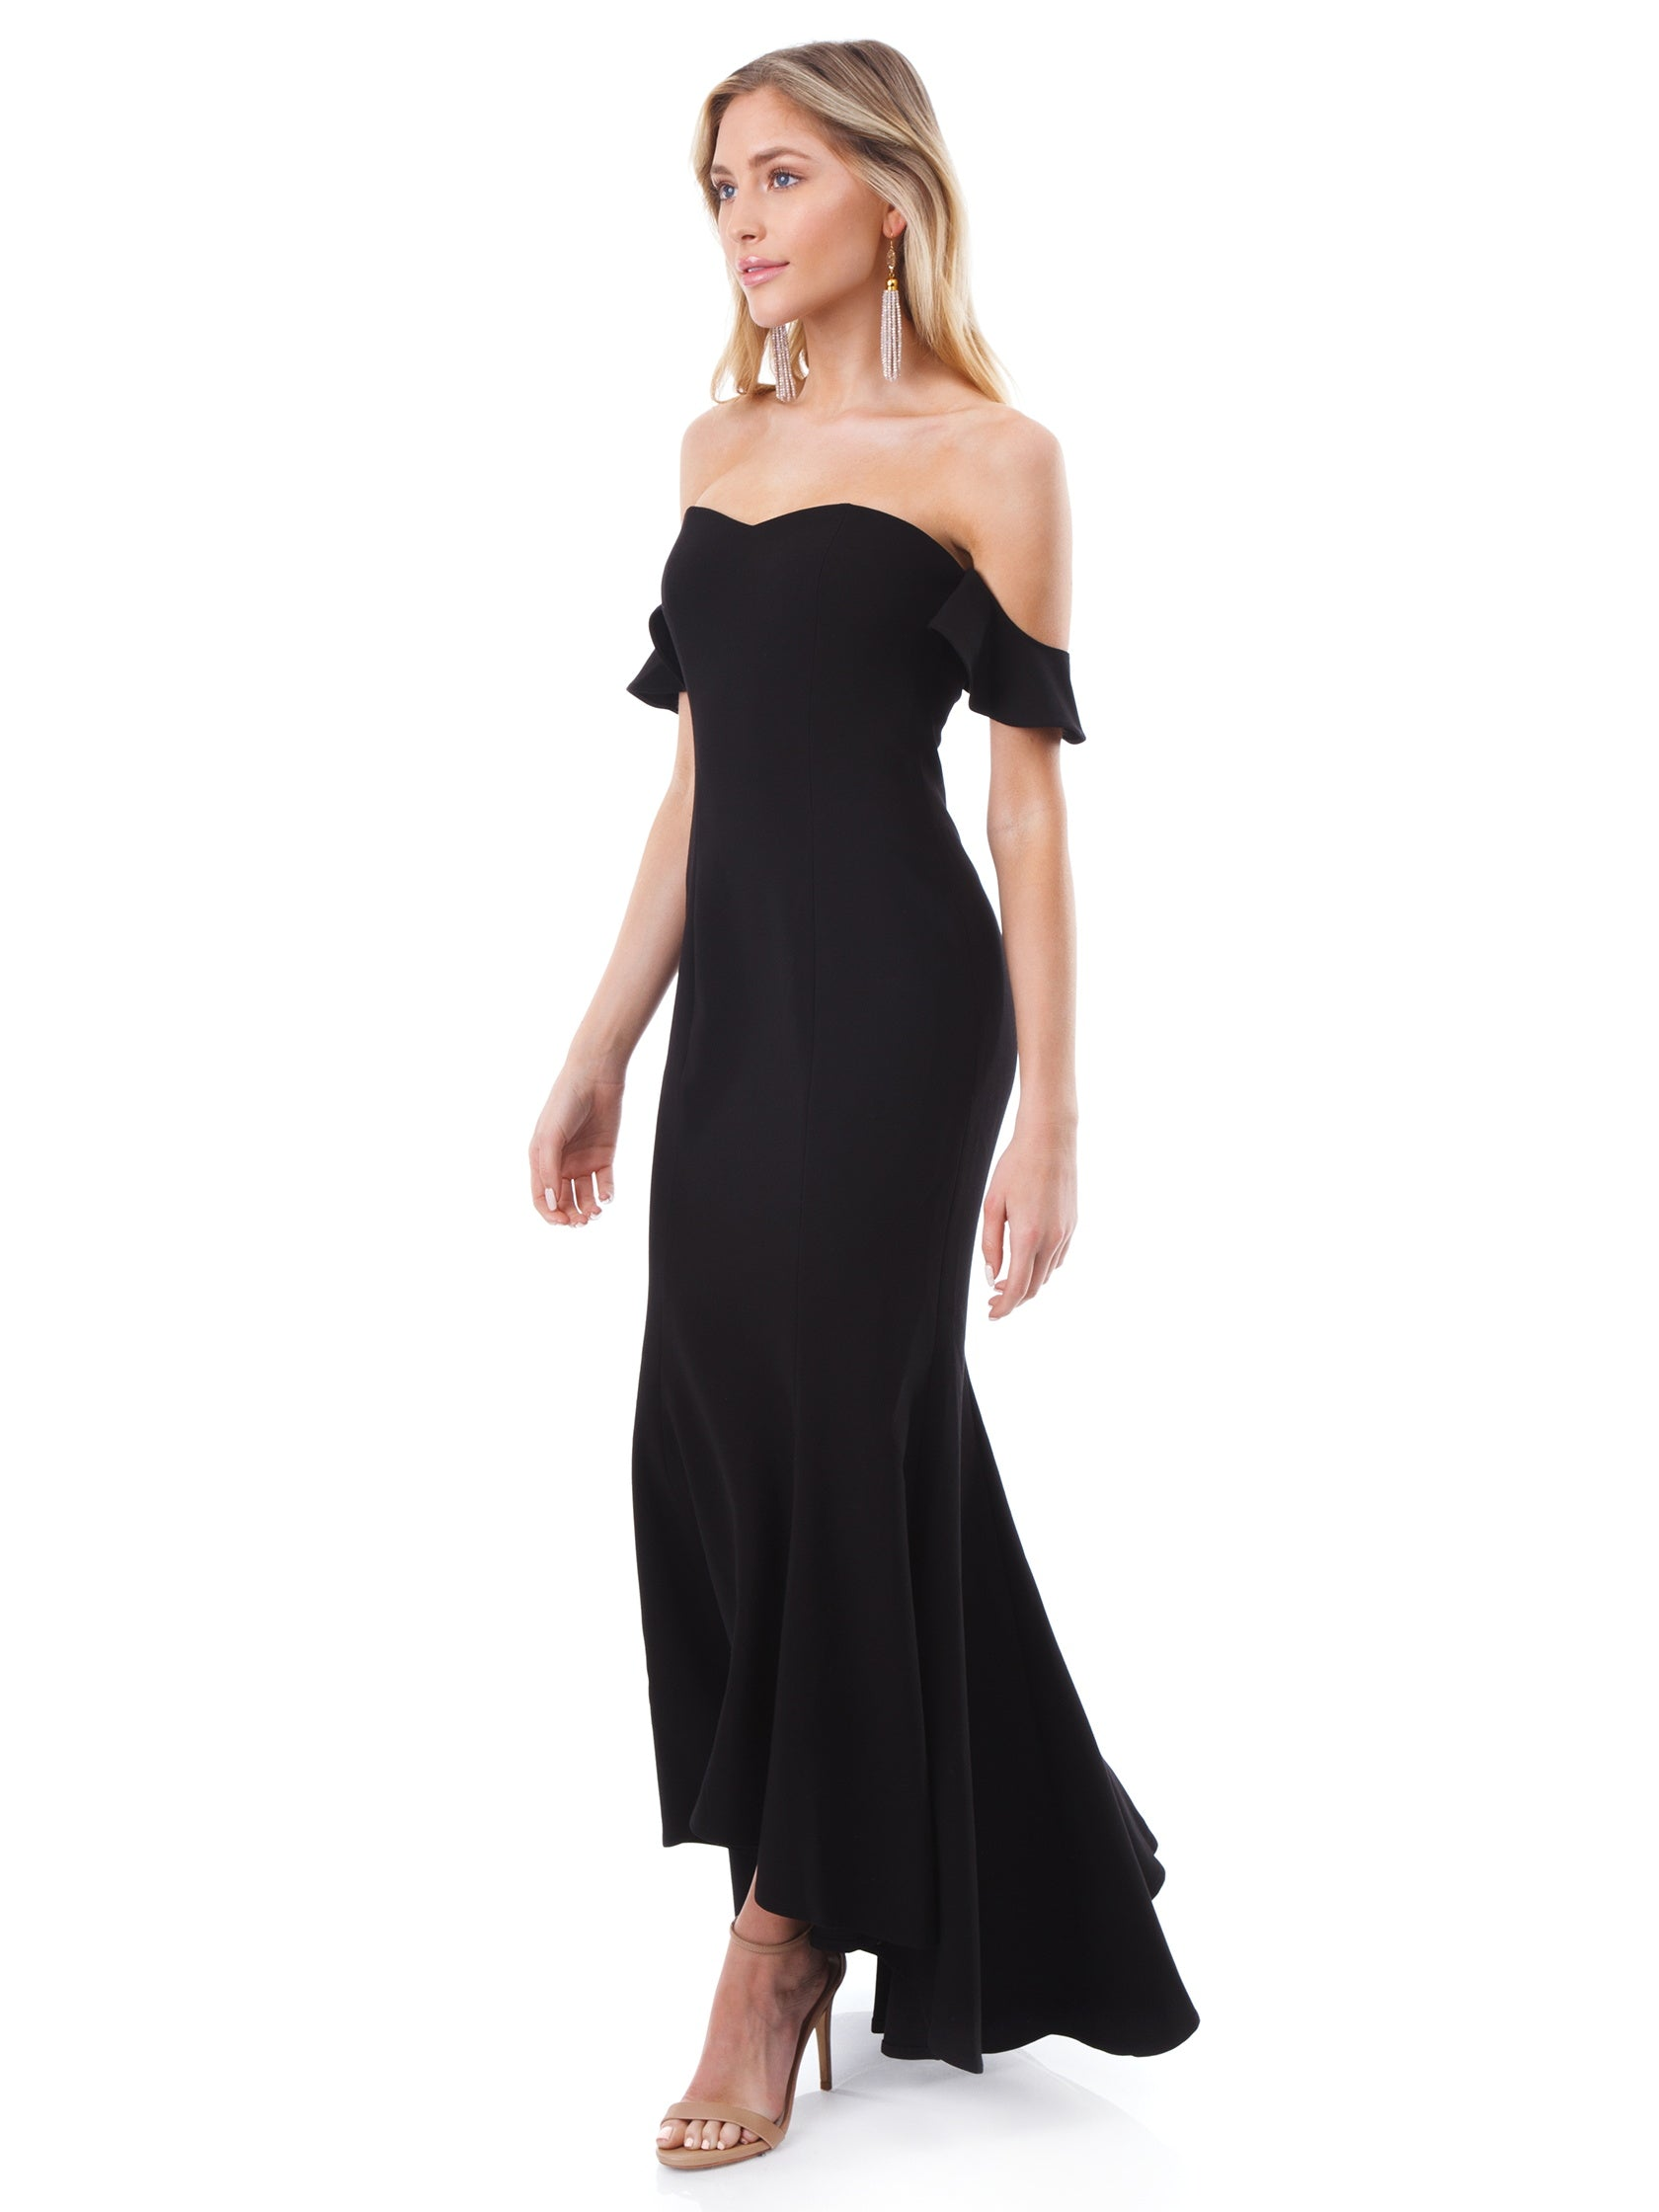 45a180ac4cca Woman wearing a dress rental from LIKELY called Sunset Gown